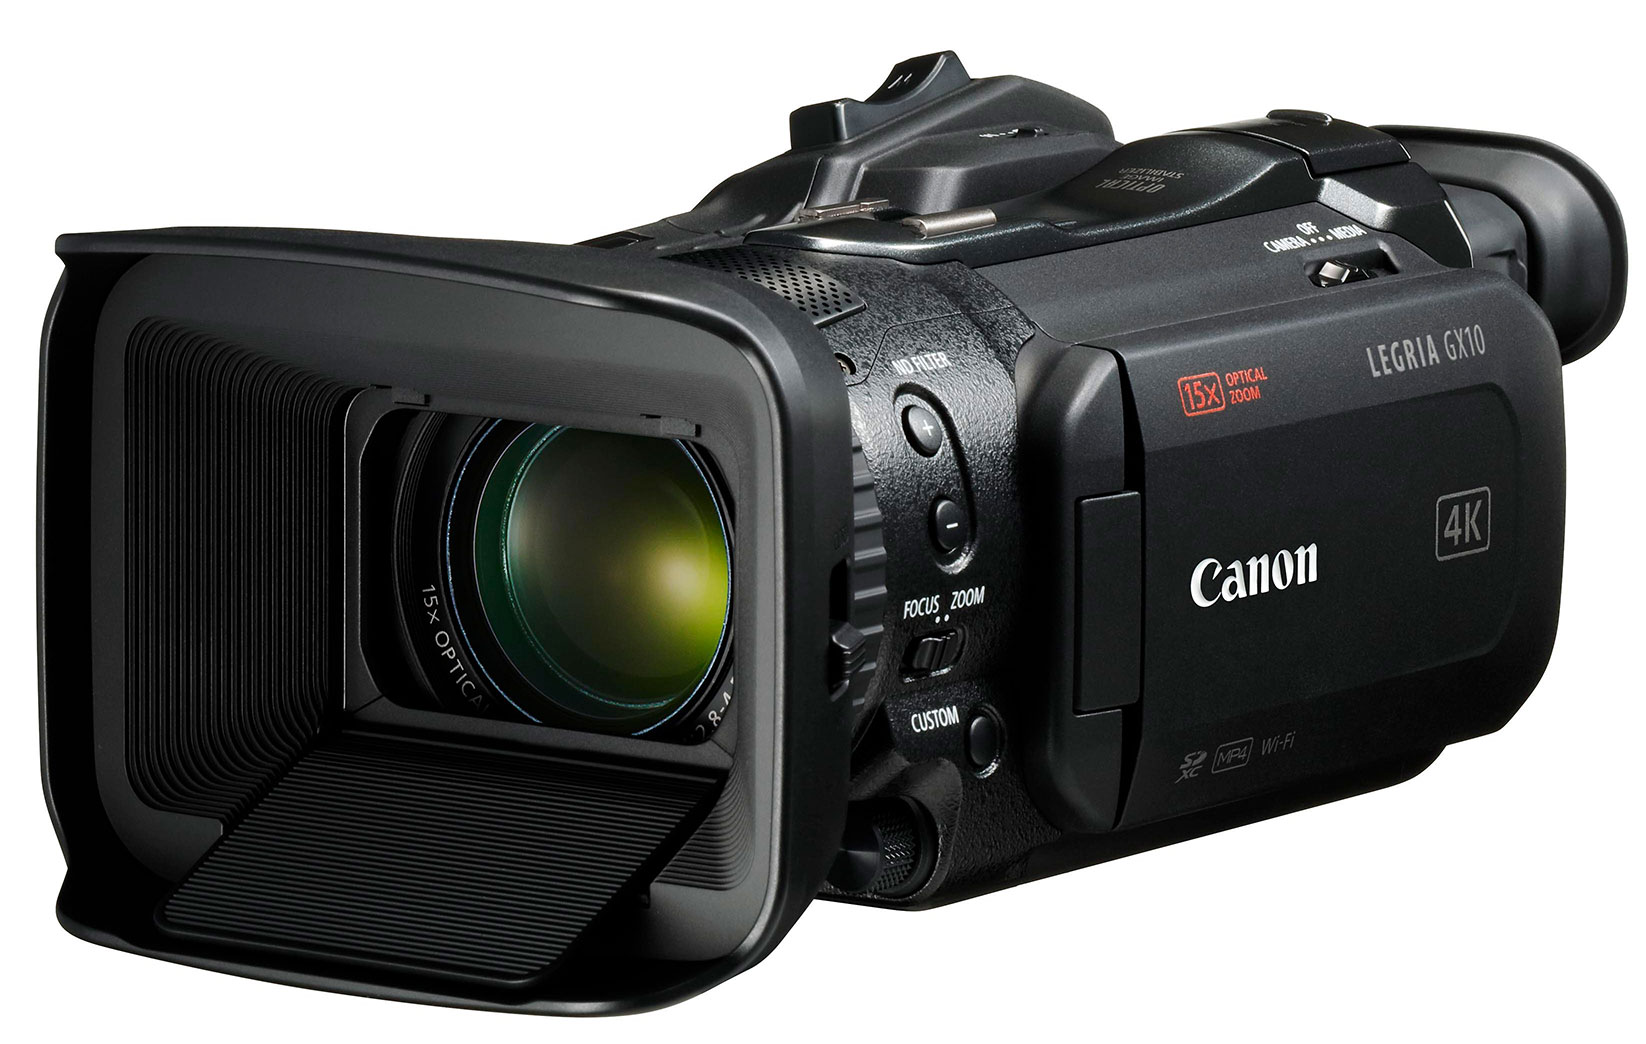 New (4K) camcorders from Canon - XF400/405, XA11/15 and GX10